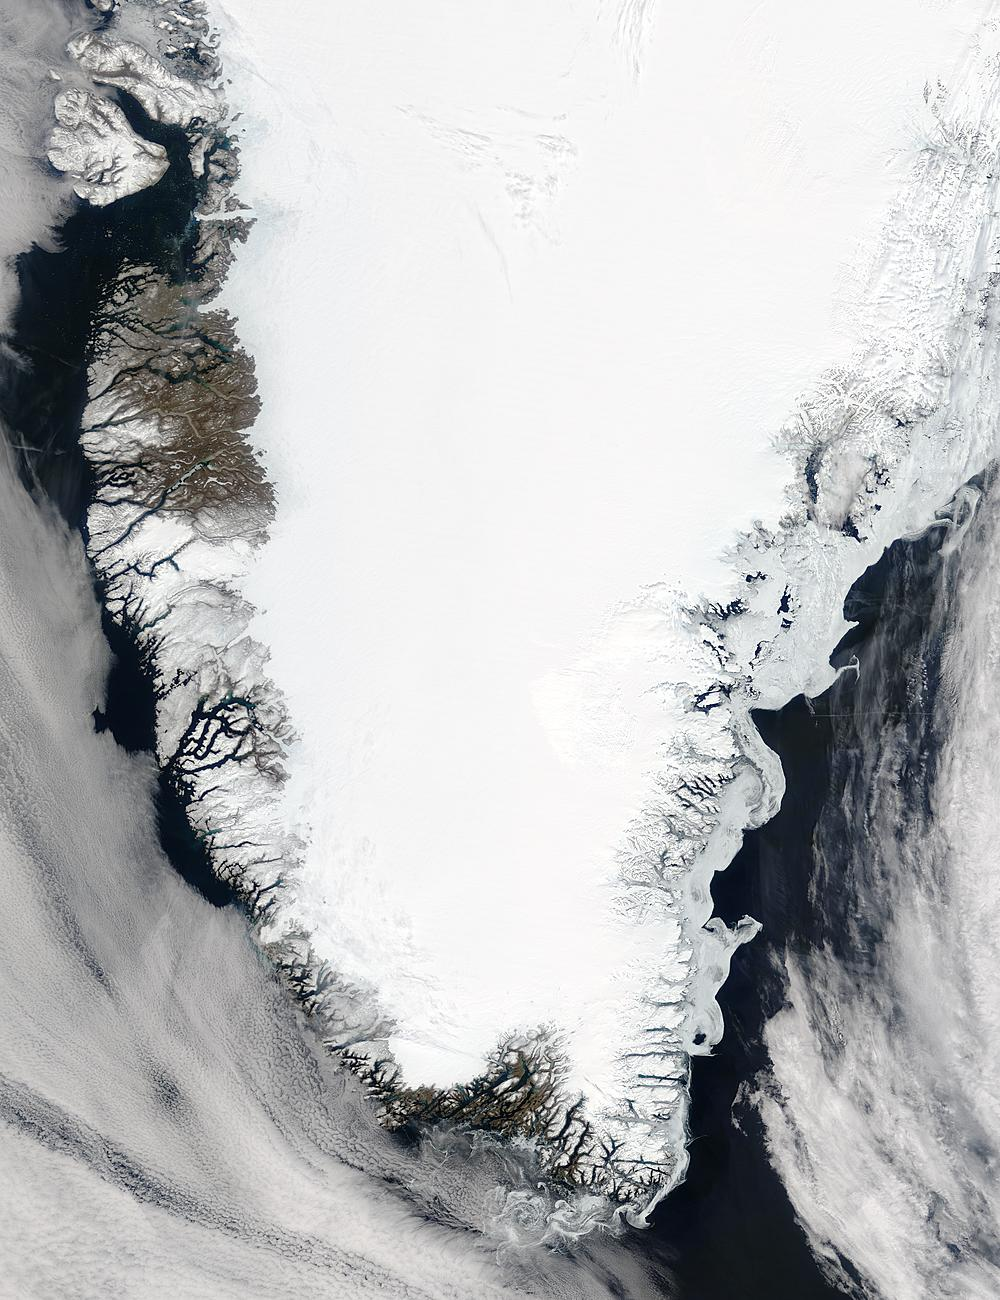 2004/150 - 05/29 at 14 :25 UTC Southern Greenland Satellite: Terra